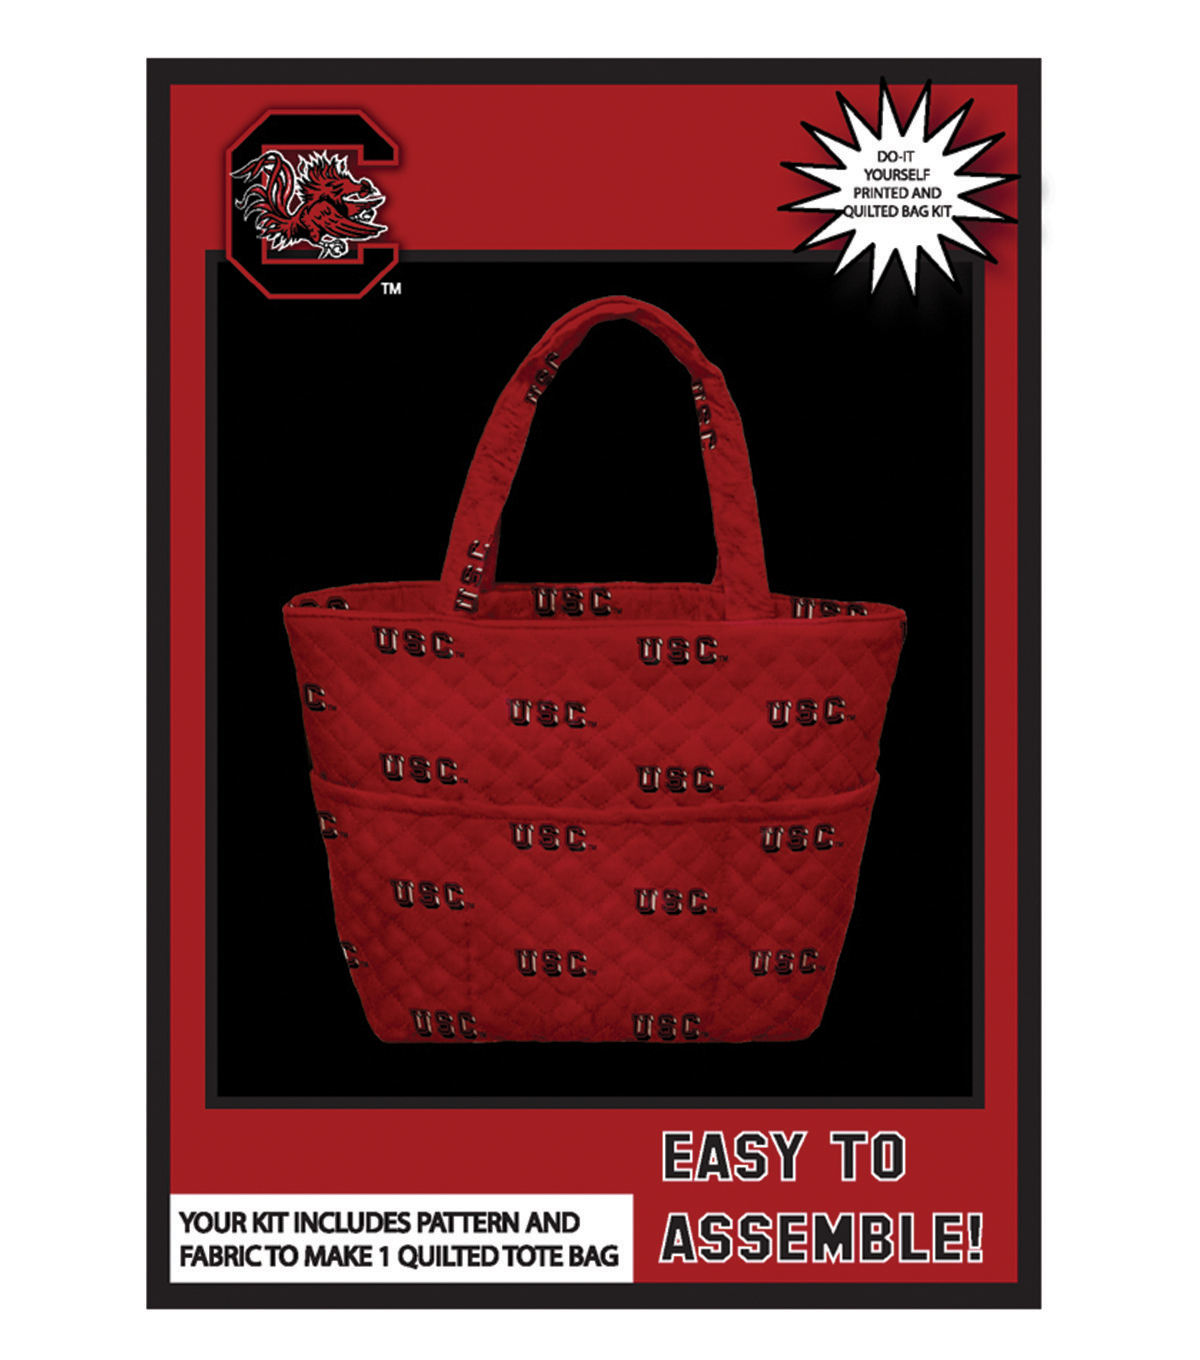 University of South Carolina Gamecocks Tote Kit